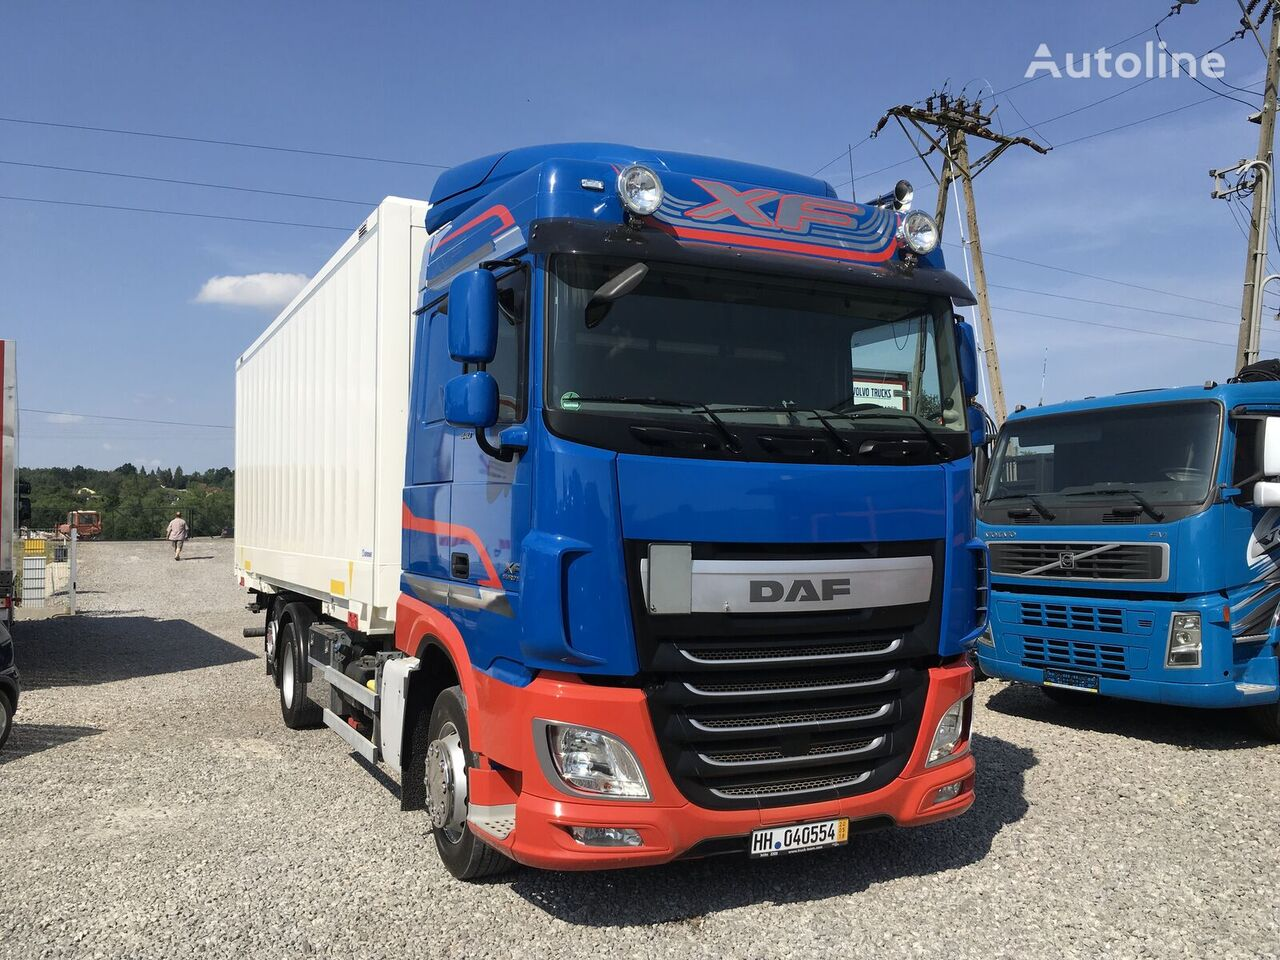 camion isotermo DAF XF 106.440 E6 105 kontener 6x2 , Super stan